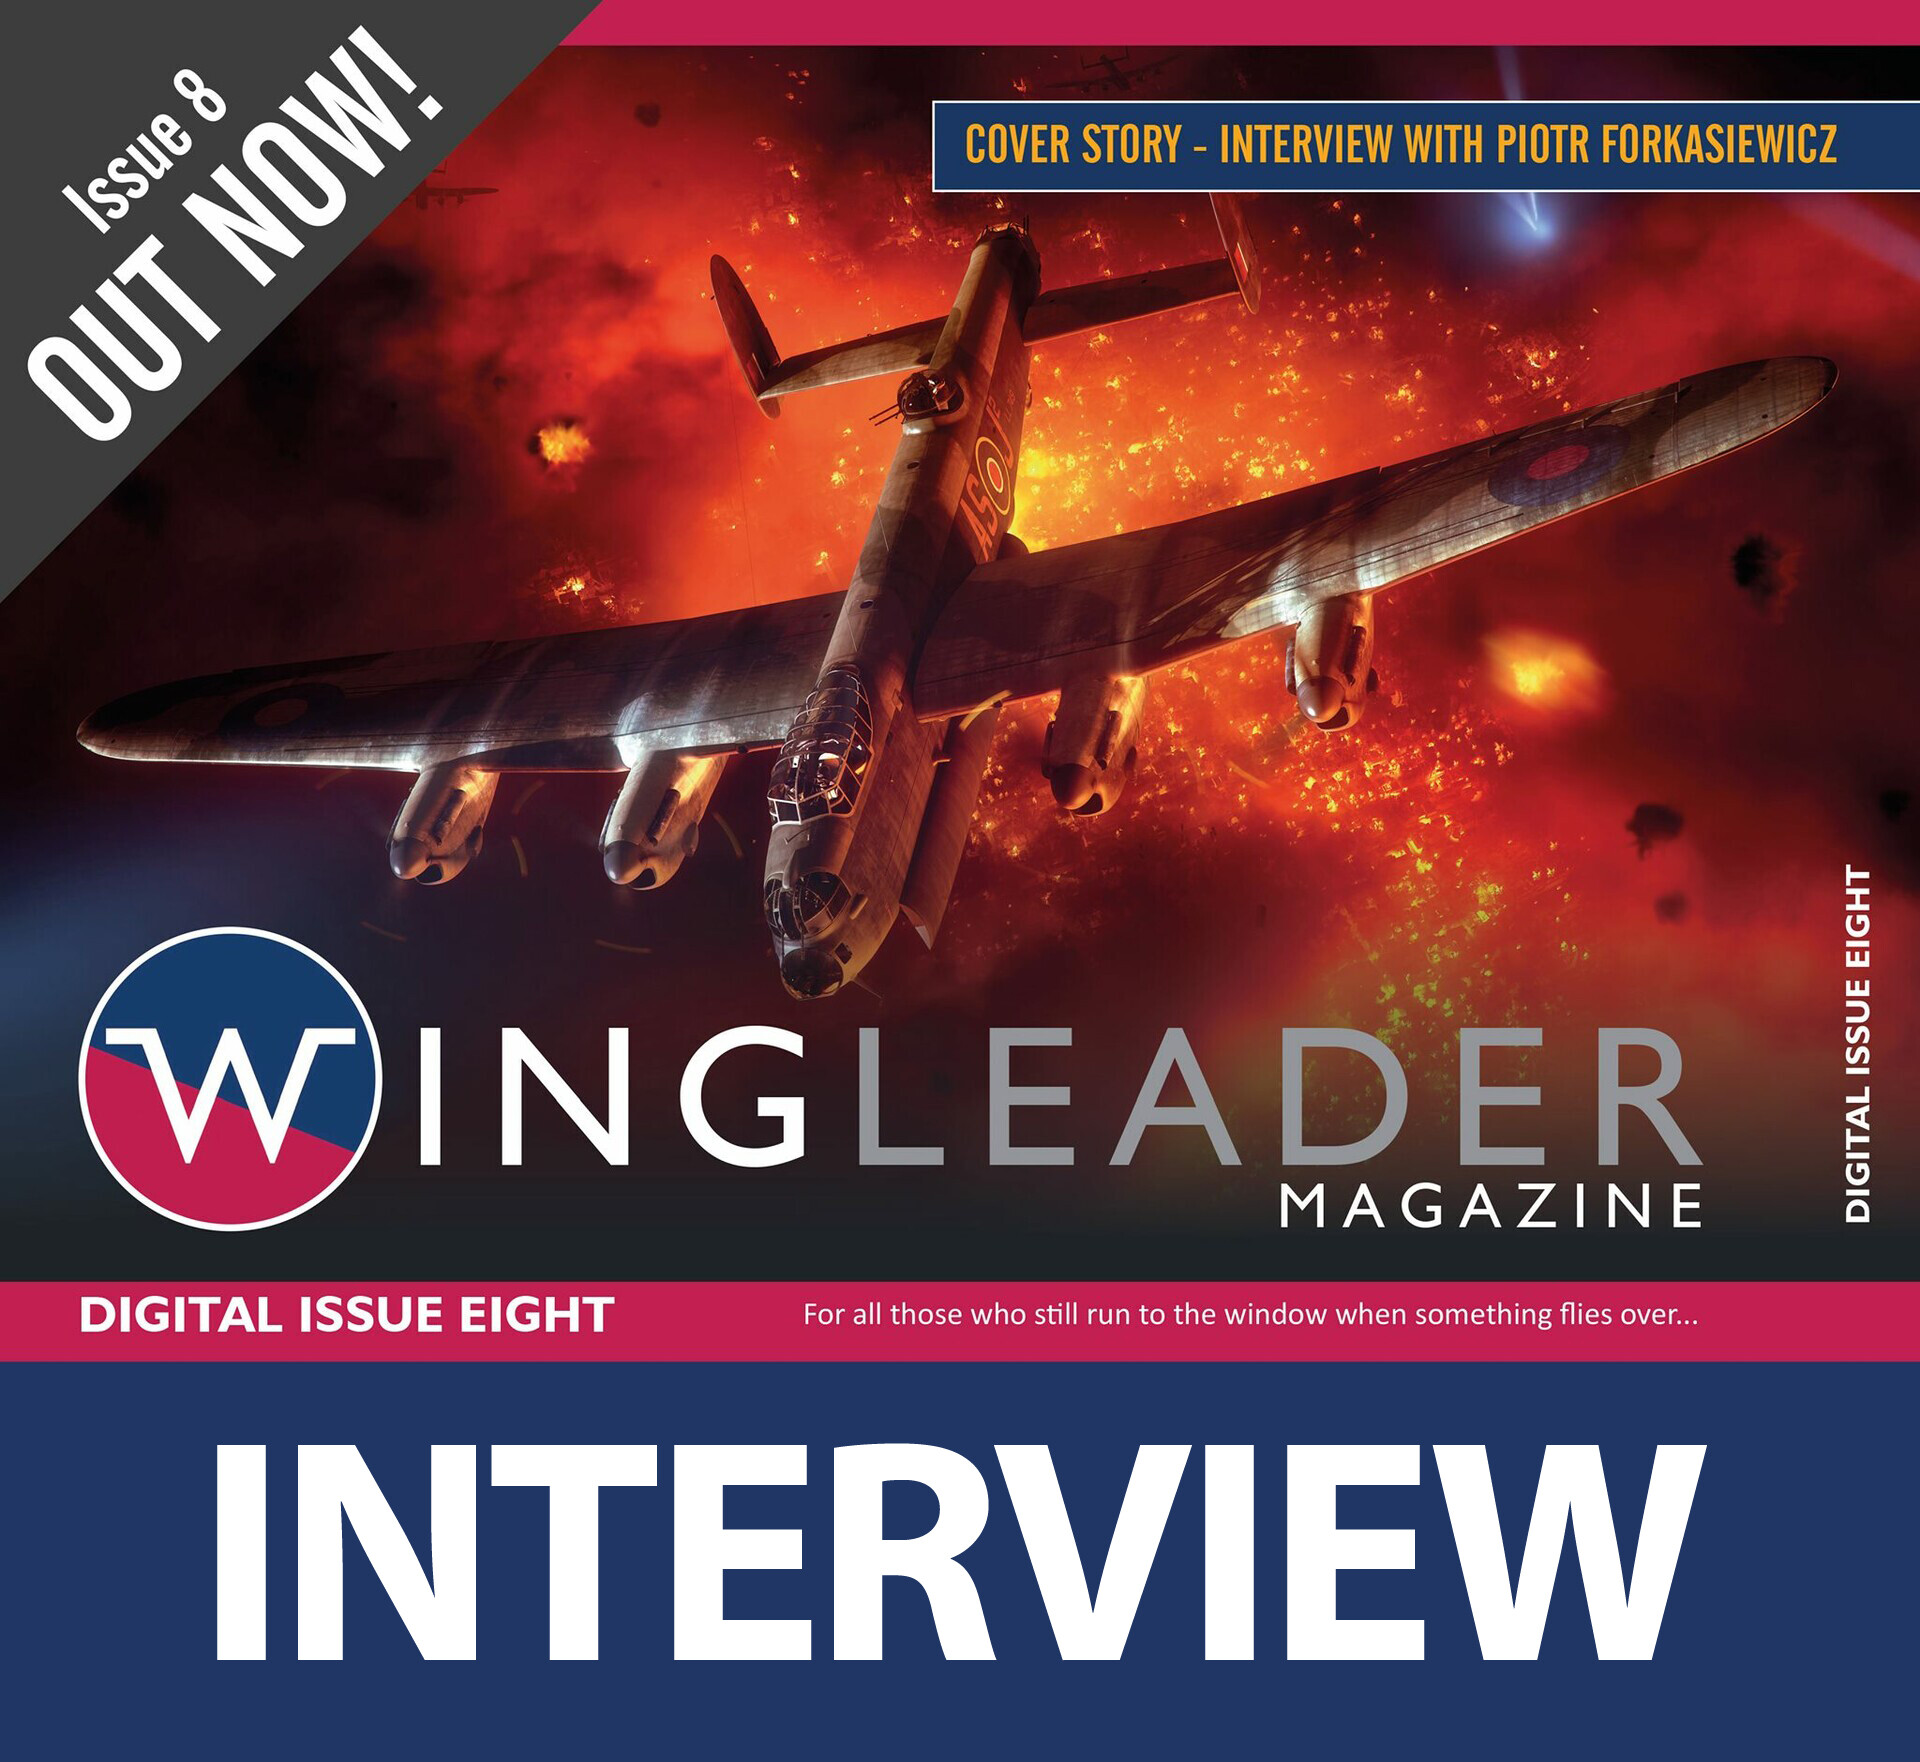 https://www.wingleadermagazine.com/issue8